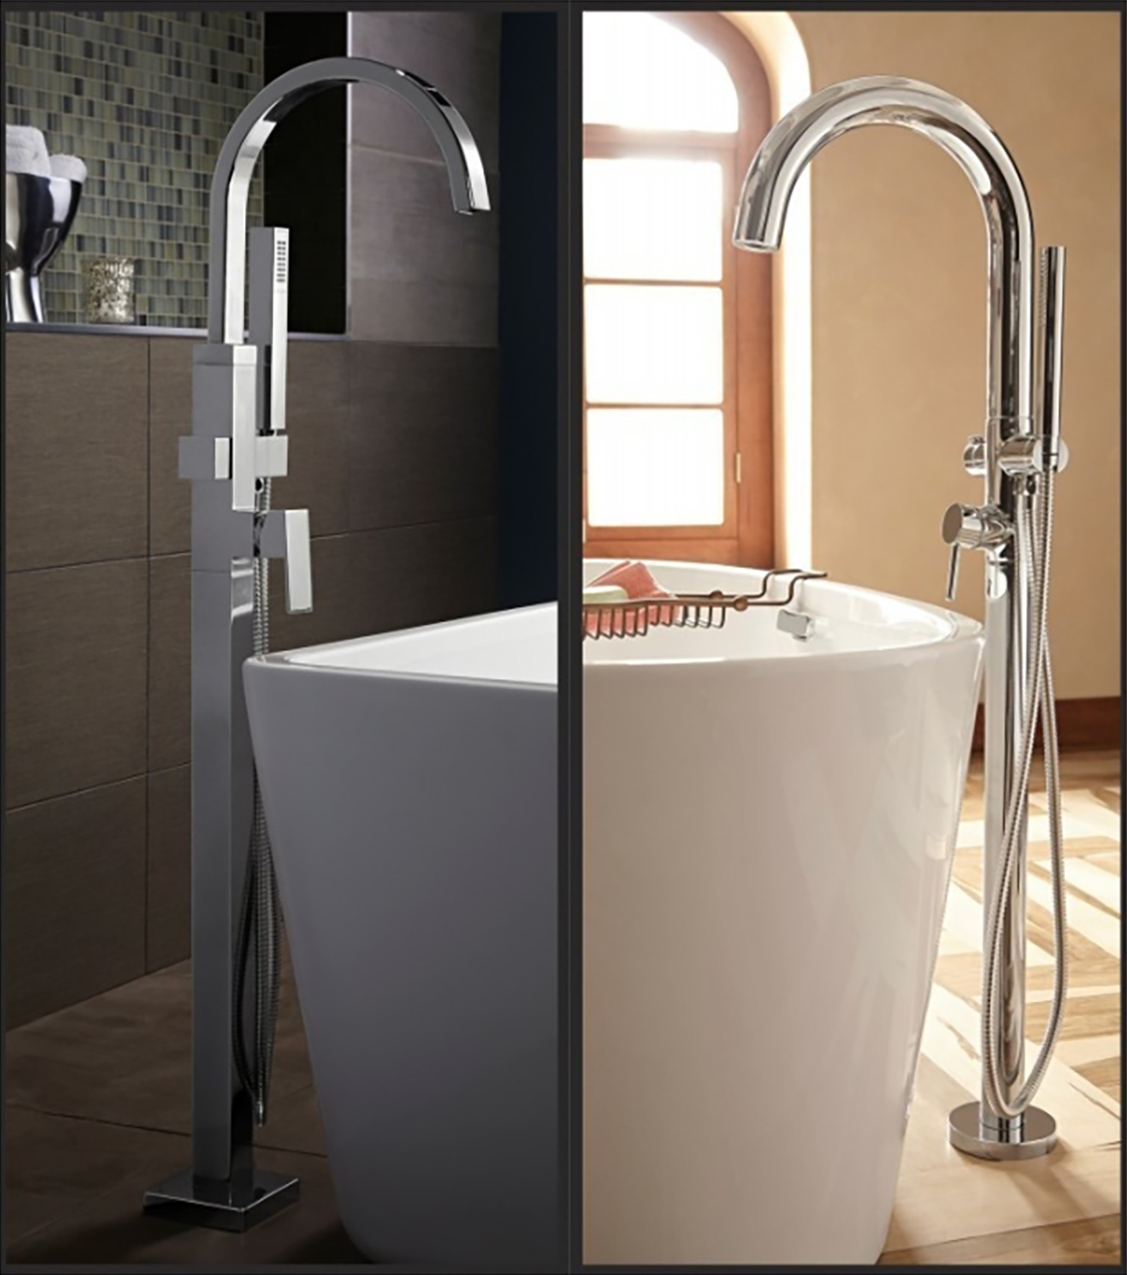 Floor-mounted Tub Fillers Provide Water-saving, Drip-free Operation ...